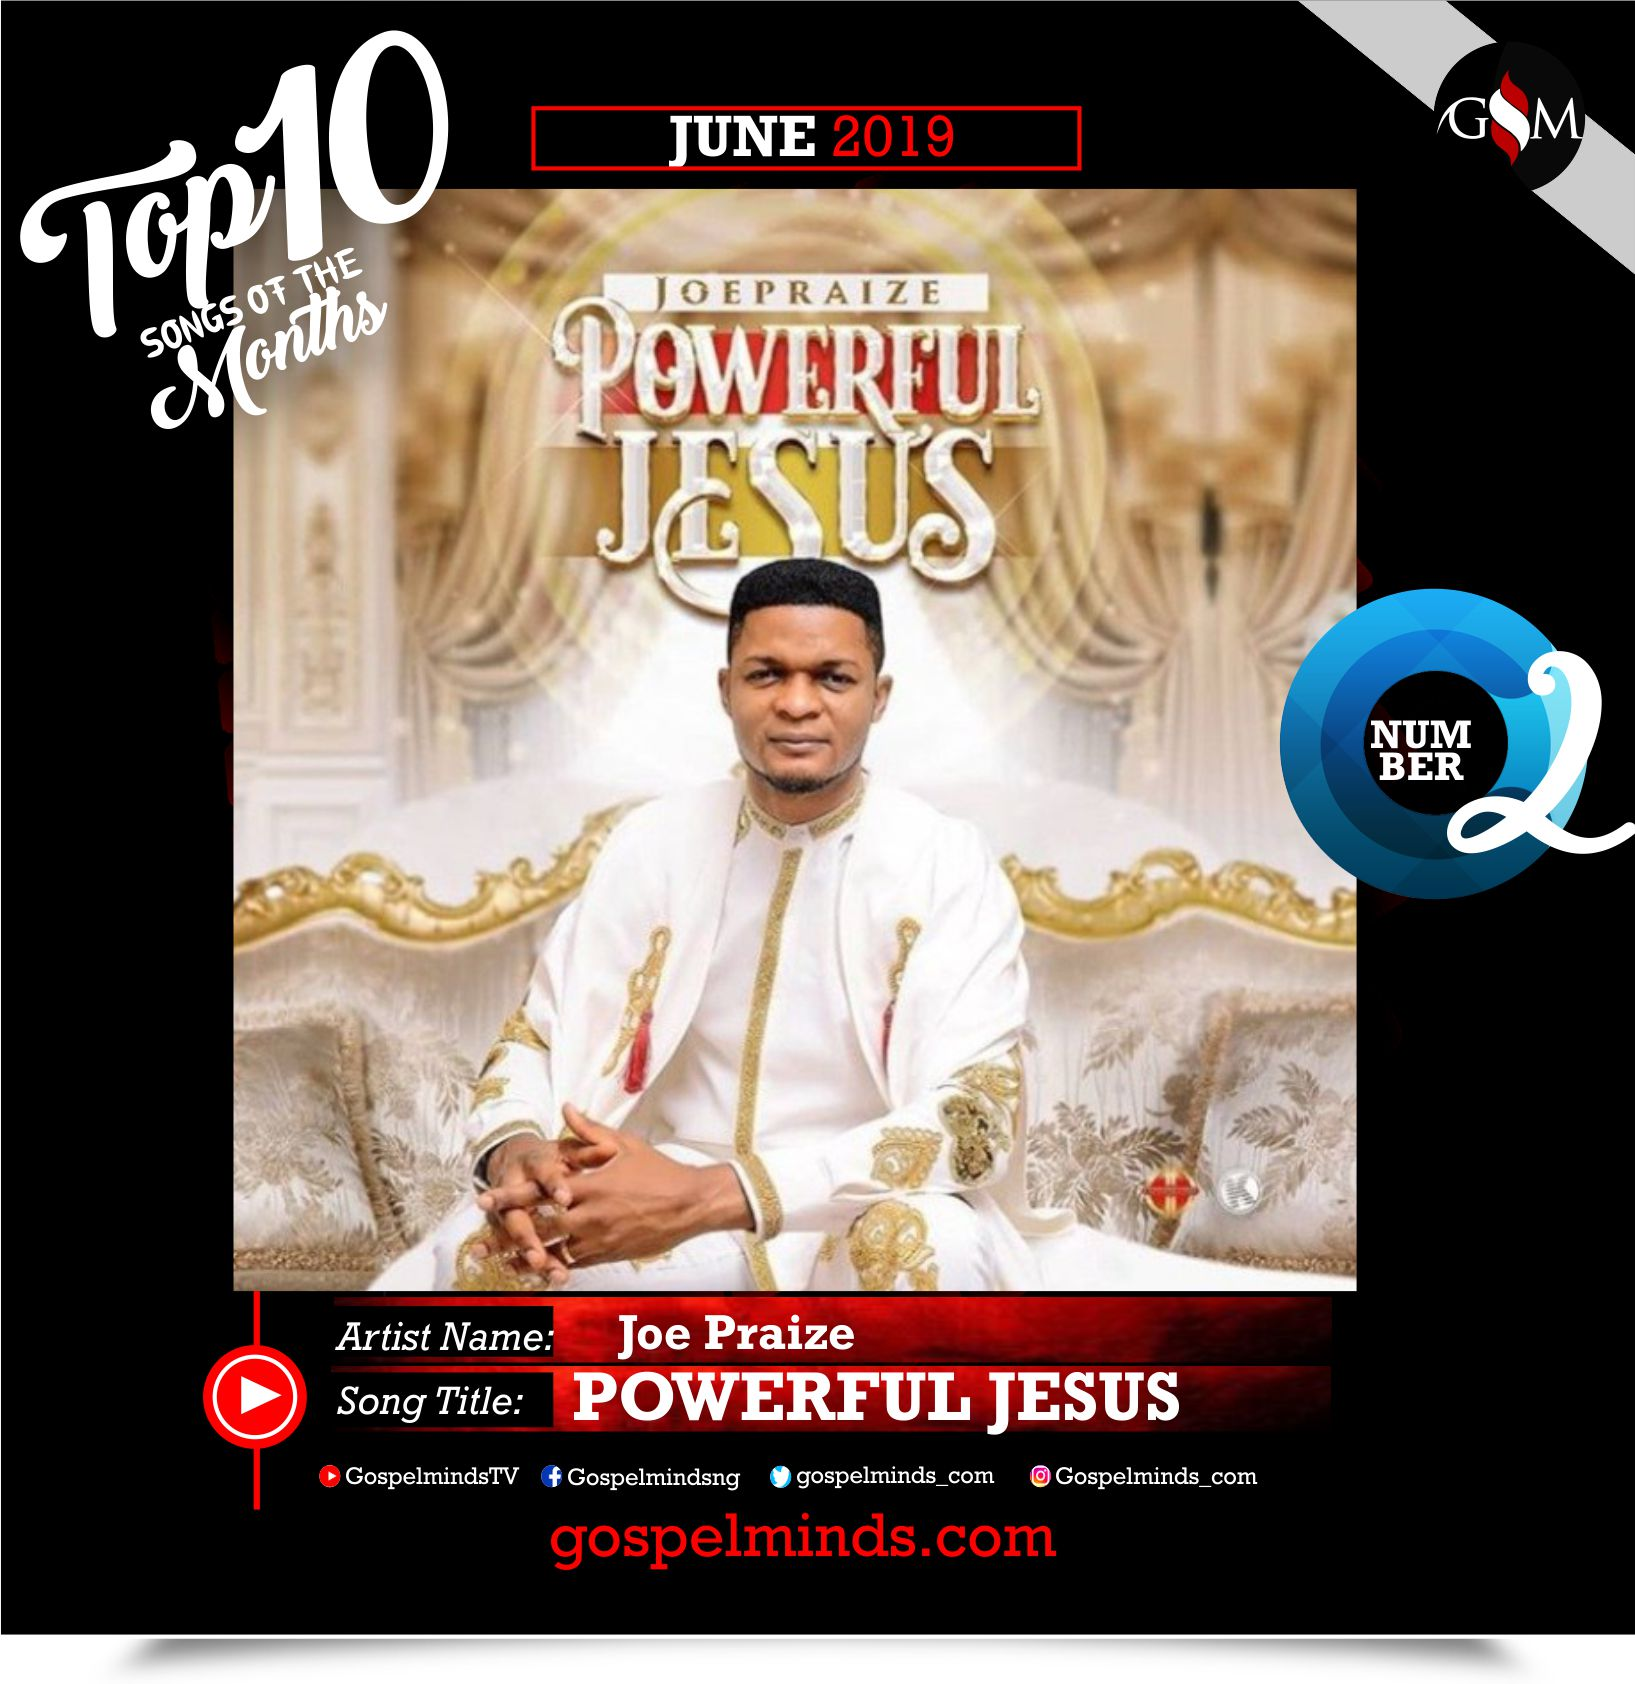 Top 10 Gospel Songs of The Month - June 2019 GospelMinds Ent. (Joe Praize – Powerful Jesus)